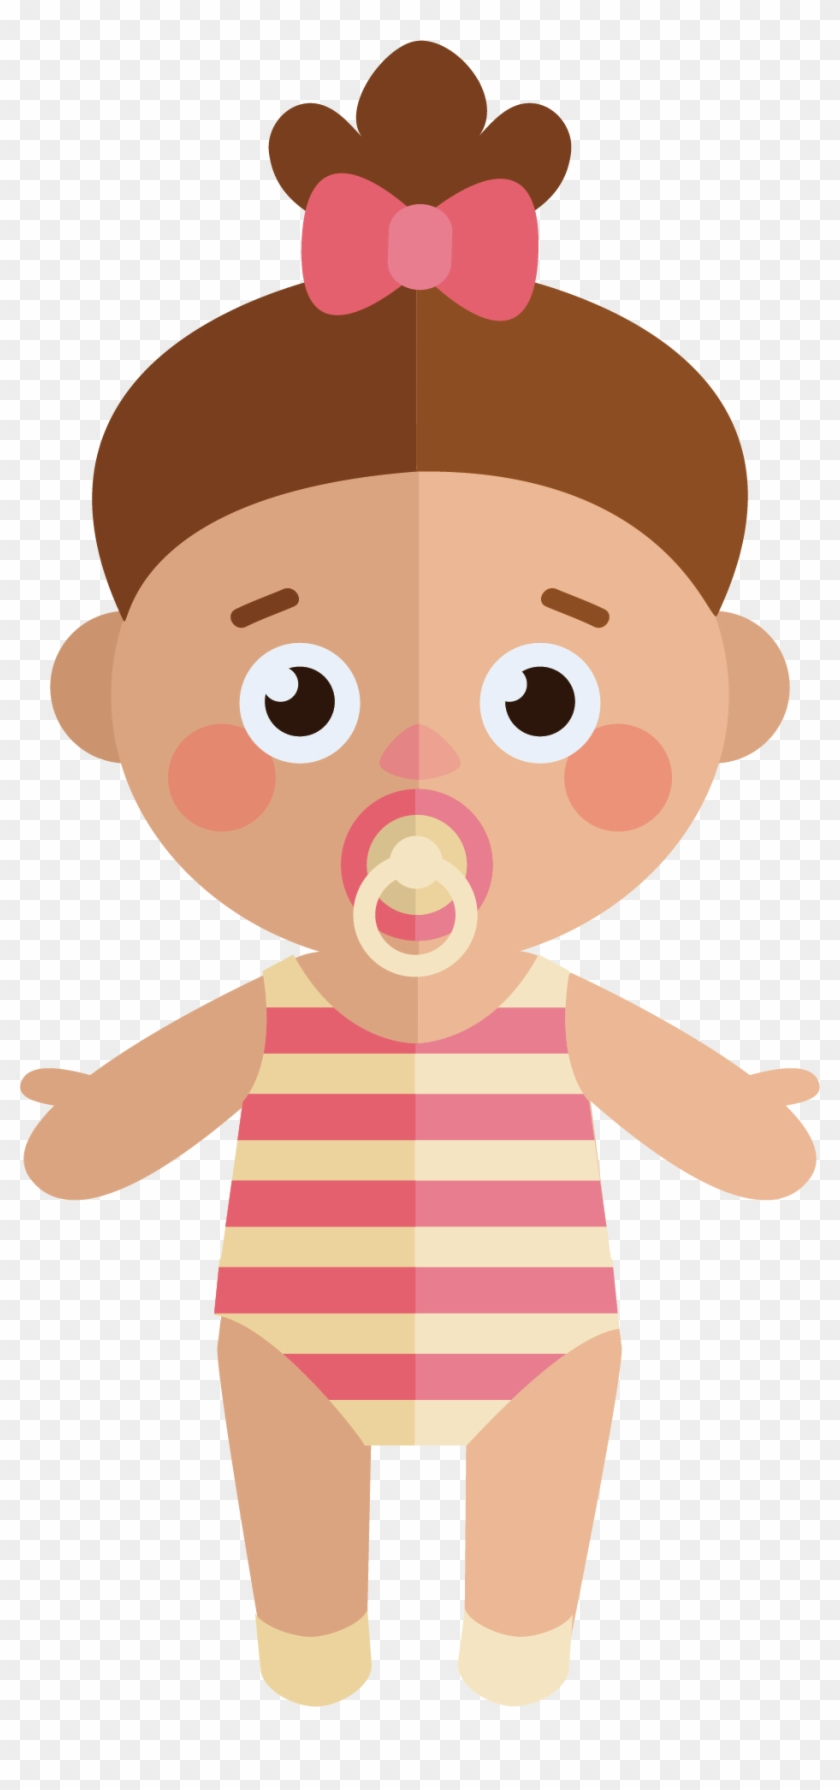 Cute Baby Vector 935*1949 Transprent Png Free Download - Cuteness #1275451